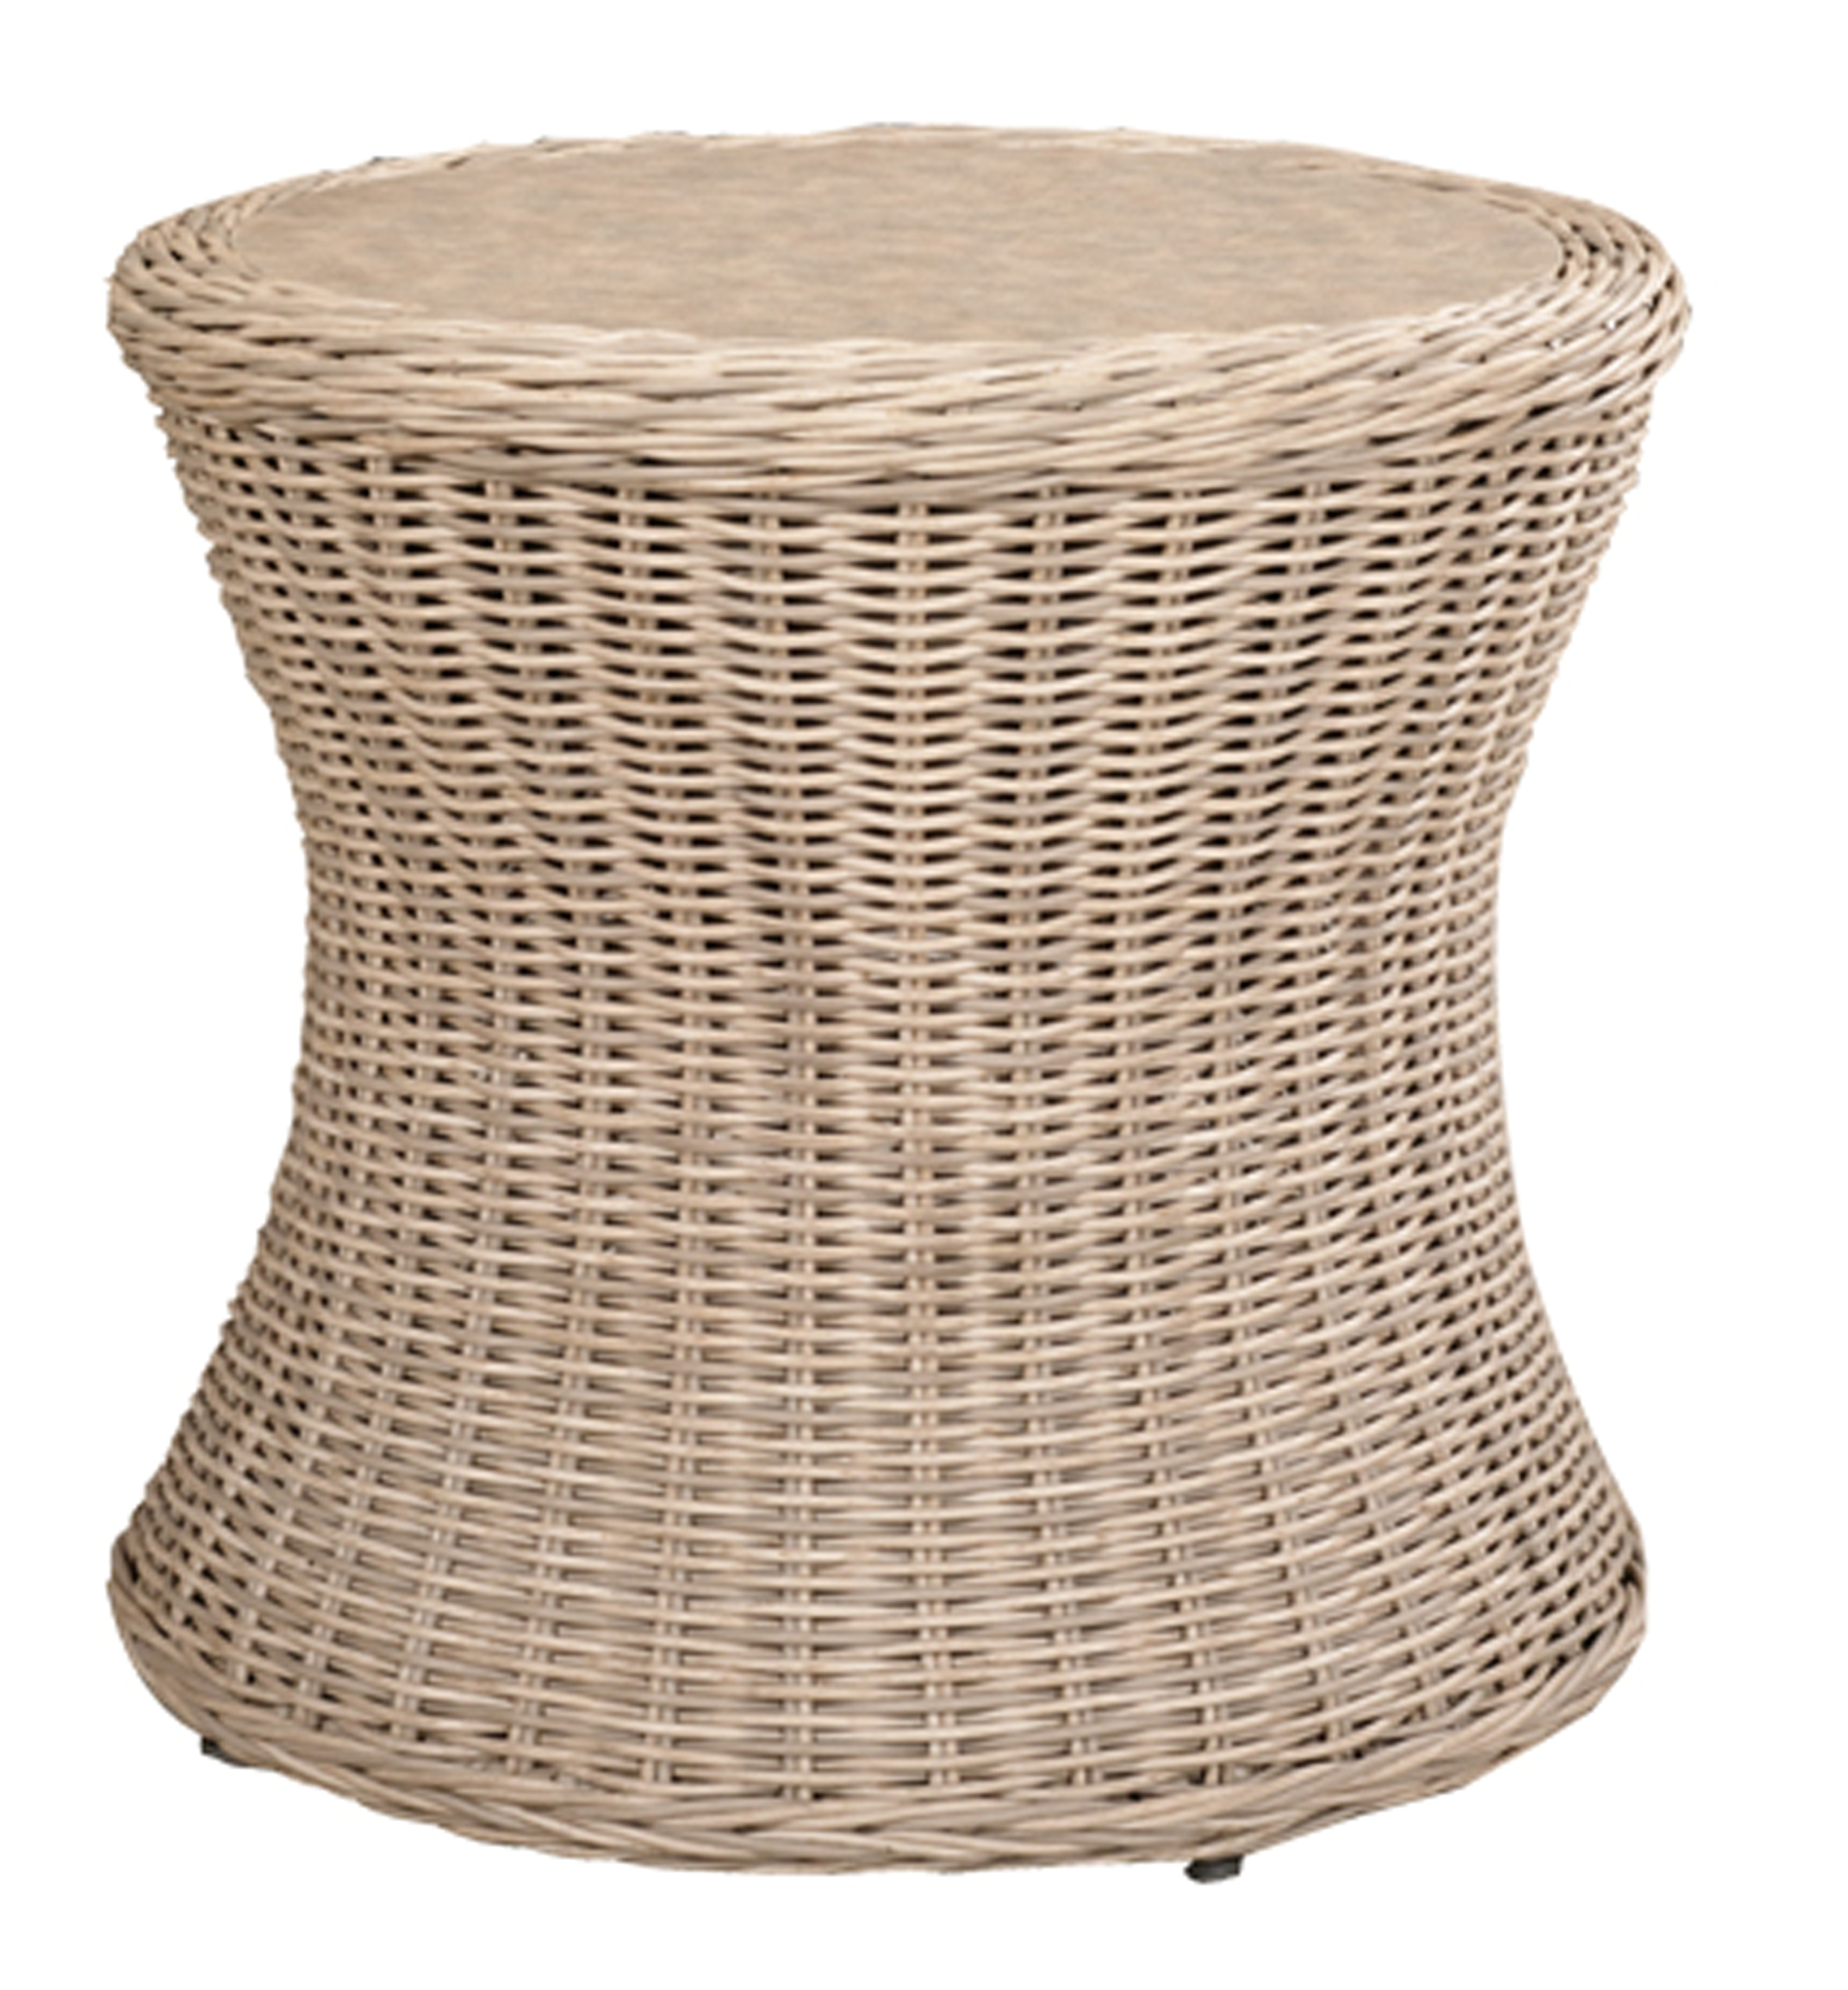 """971924 West Hampton Round End Table * Erie Top *    971924W West Hampton Round End Table * Woven top *   24"""" dia x 19"""""""